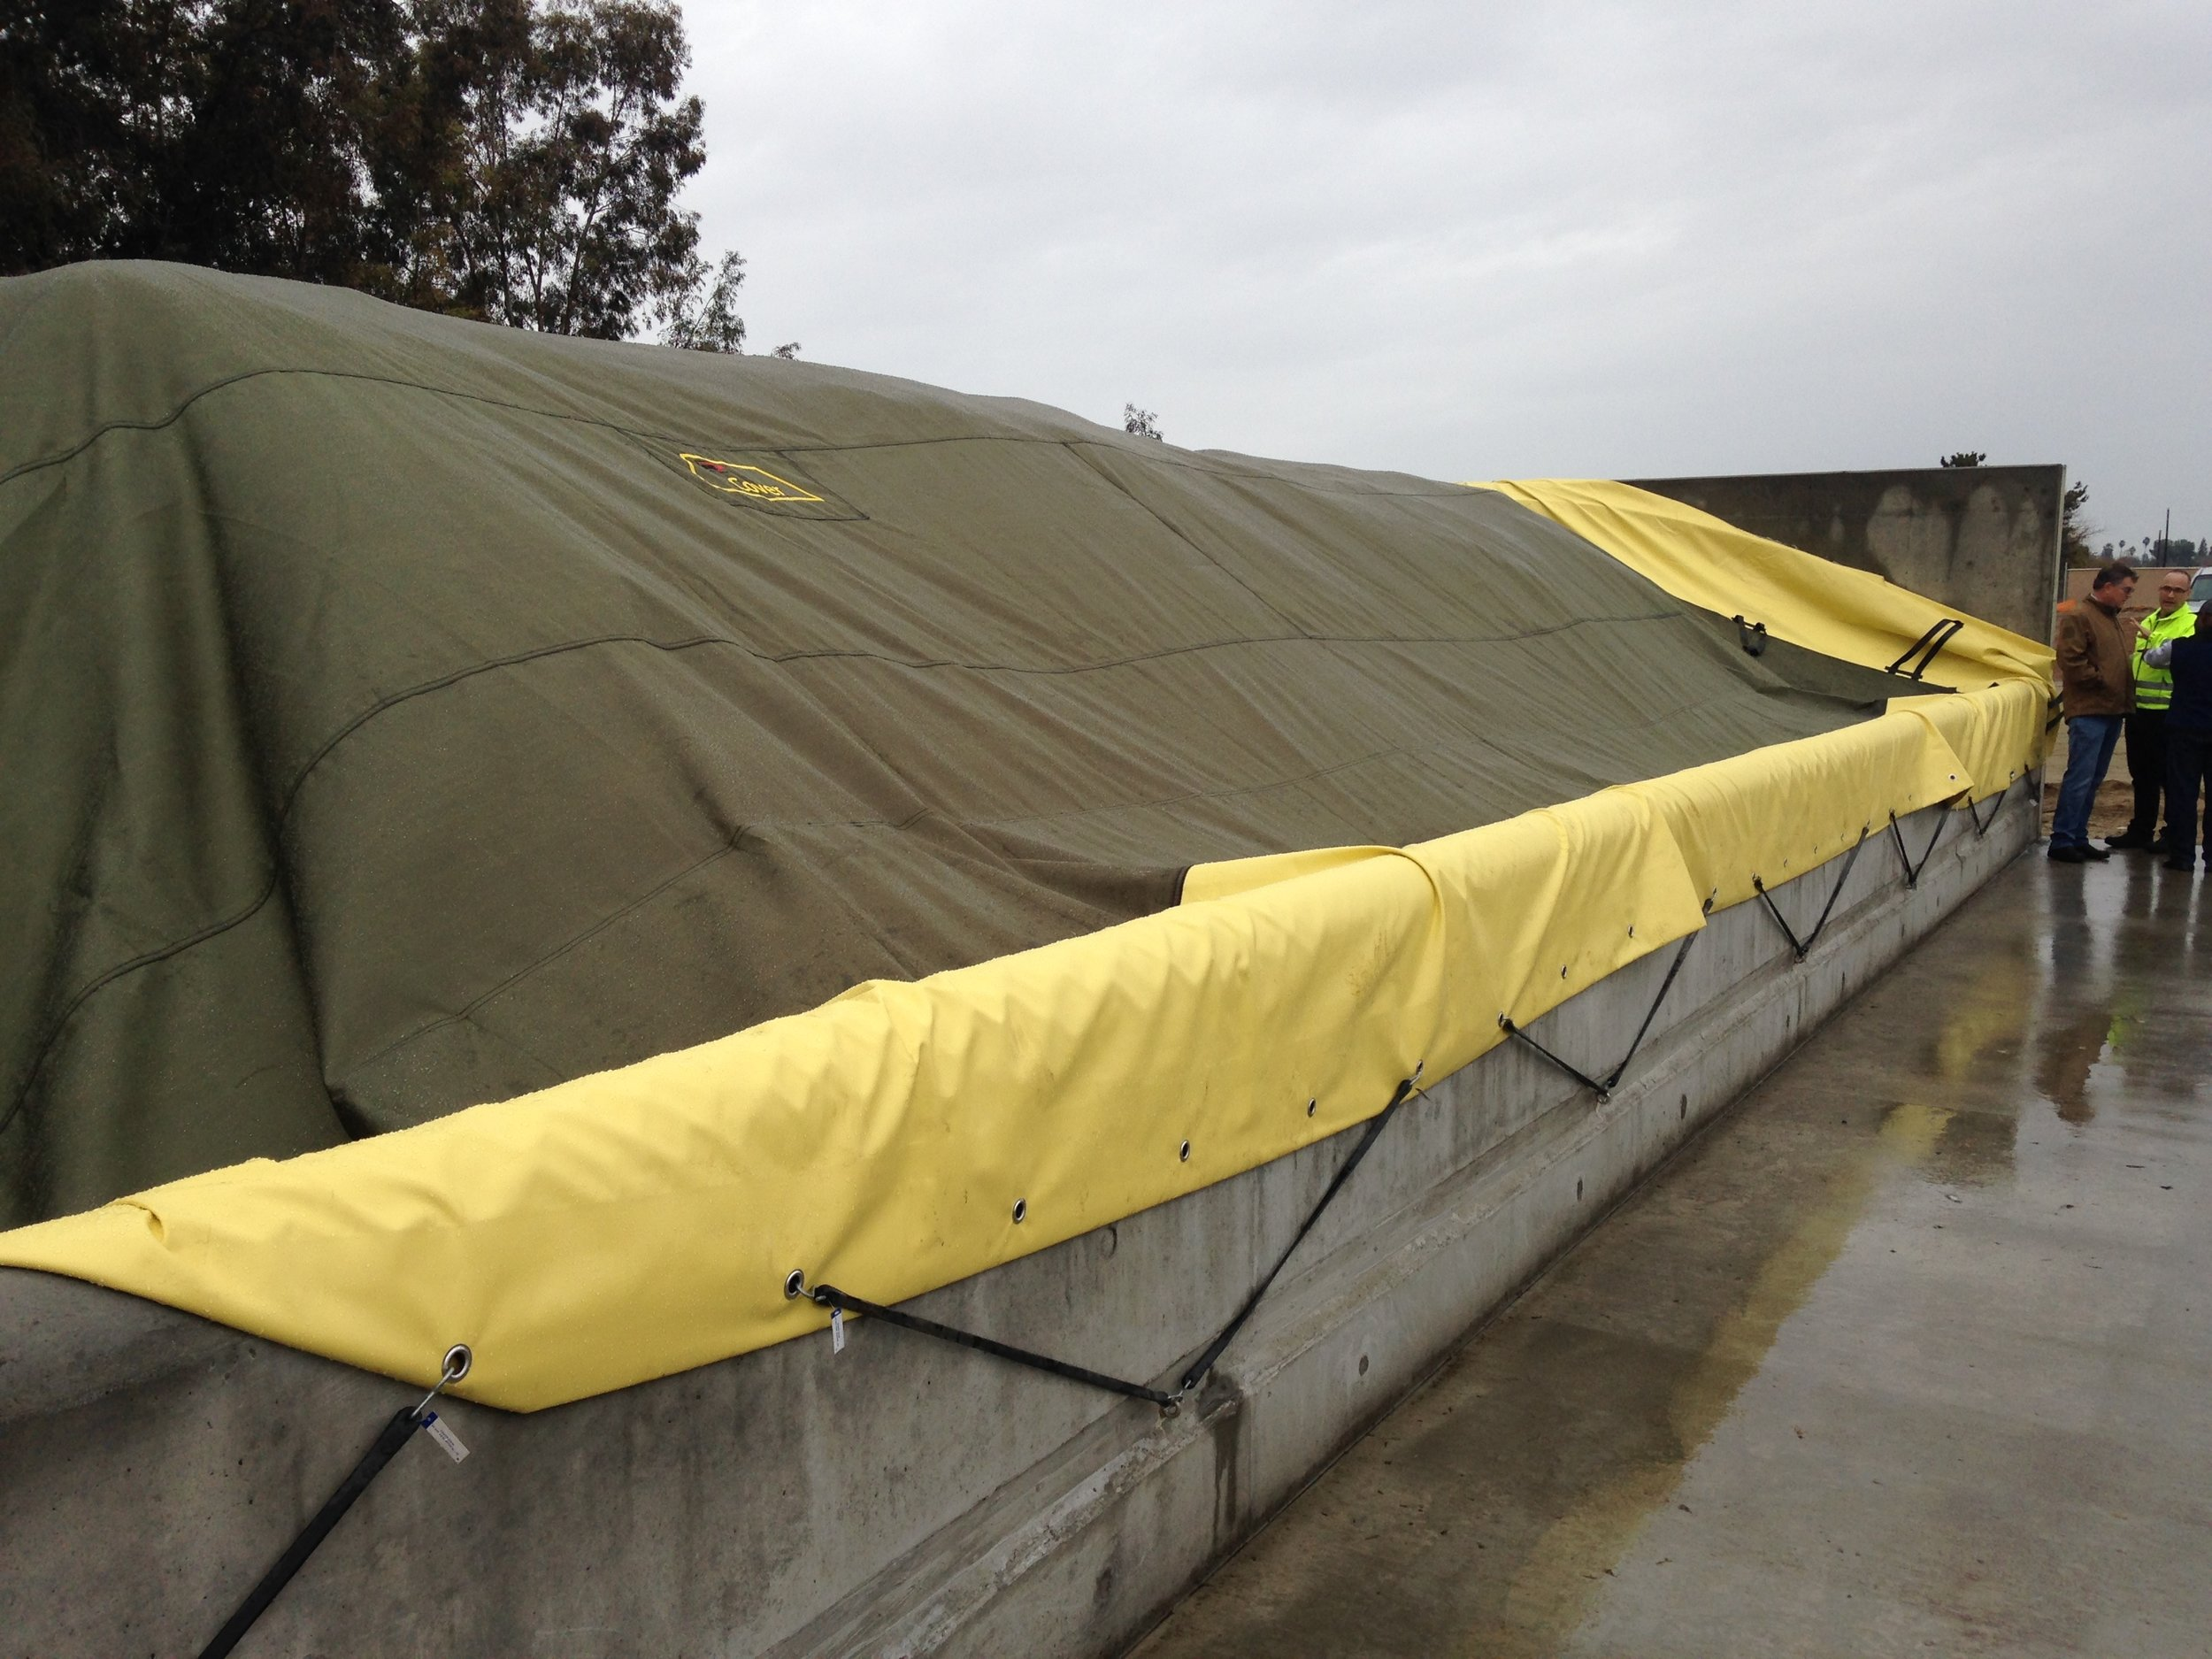 GORE composting technology covers Mid Valley Disposal's 16 composting bunkers